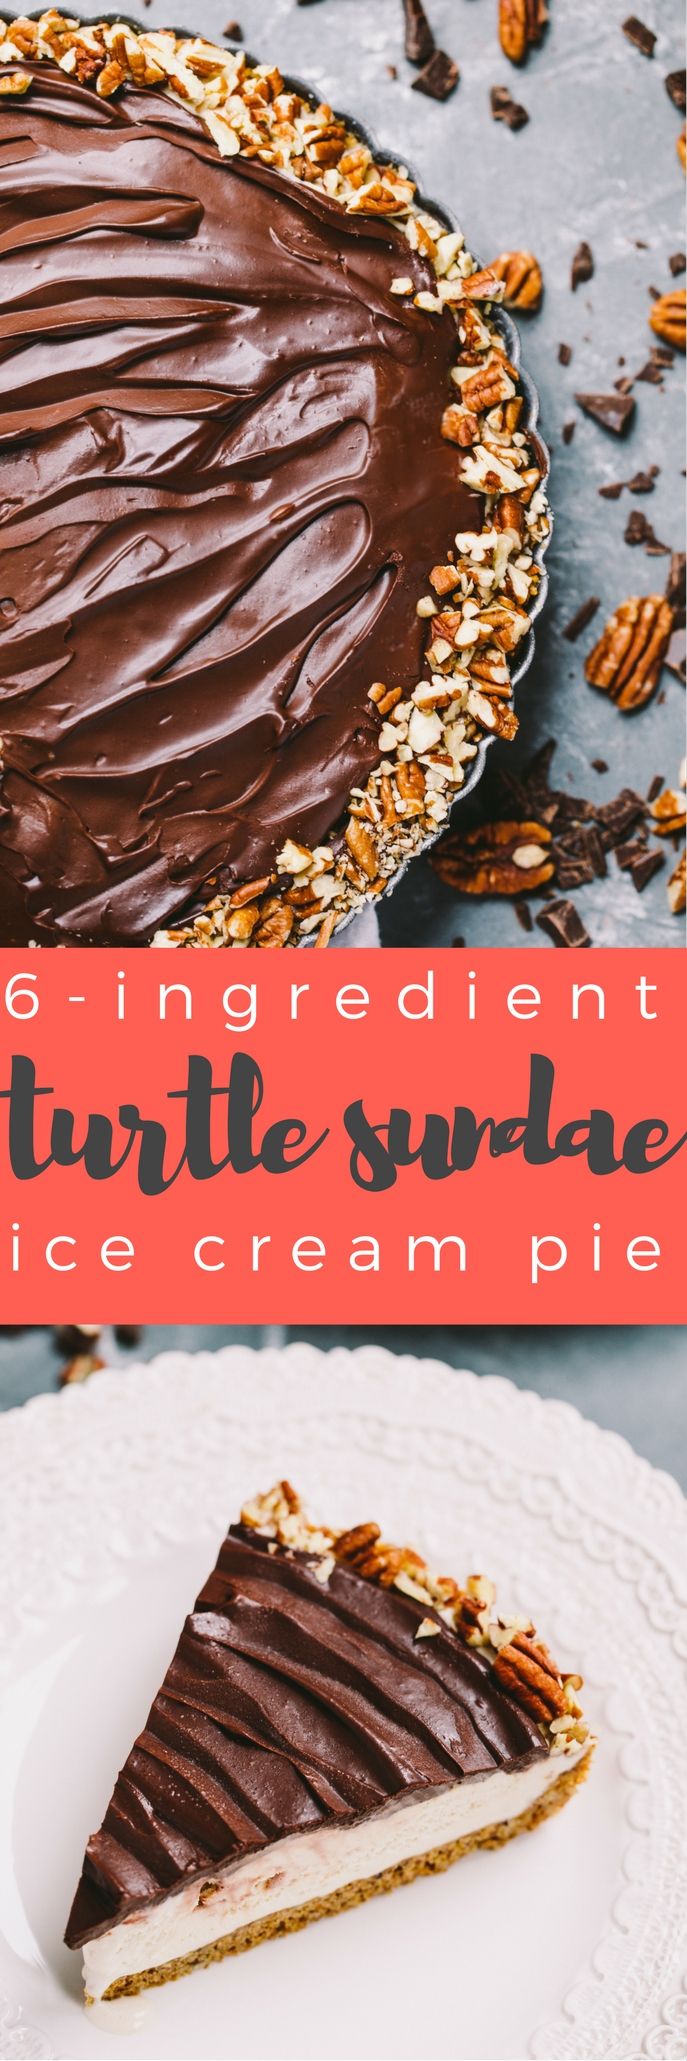 an ice cream pie & a turtle sundae all in one! this turtle sundae ice cream pie starts with a pecan-graham cracker crust, is filled with salted caramel ice cream, & is topped off with a thick, fudgy layer of dark chocolate ganache & roughly chopped pecans. 6 ingredients needed to make this turtle sundae ice cream pie - this salty sweet summer dessert couldn't be easier or more delicious.